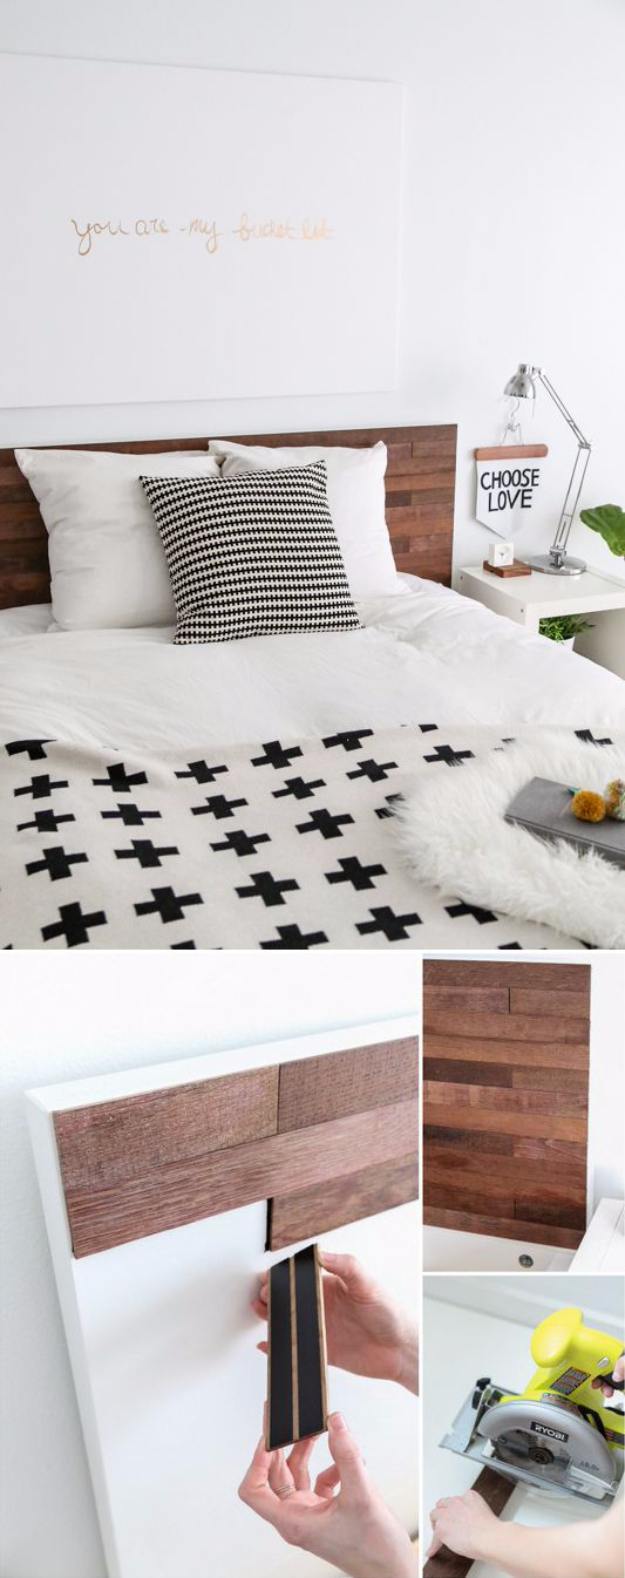 Best IKEA Hacks and DIY Hack Ideas for Furniture Projects and Home Decor from IKEA - IKEA Hack Stikwood Headboard - Creative IKEA Hack Tutorials for DIY Platform Bed, Desk, Vanity, Dresser, Coffee Table, Storage and Kitchen, Bedroom and Bathroom Decor #ikeahacks #diy